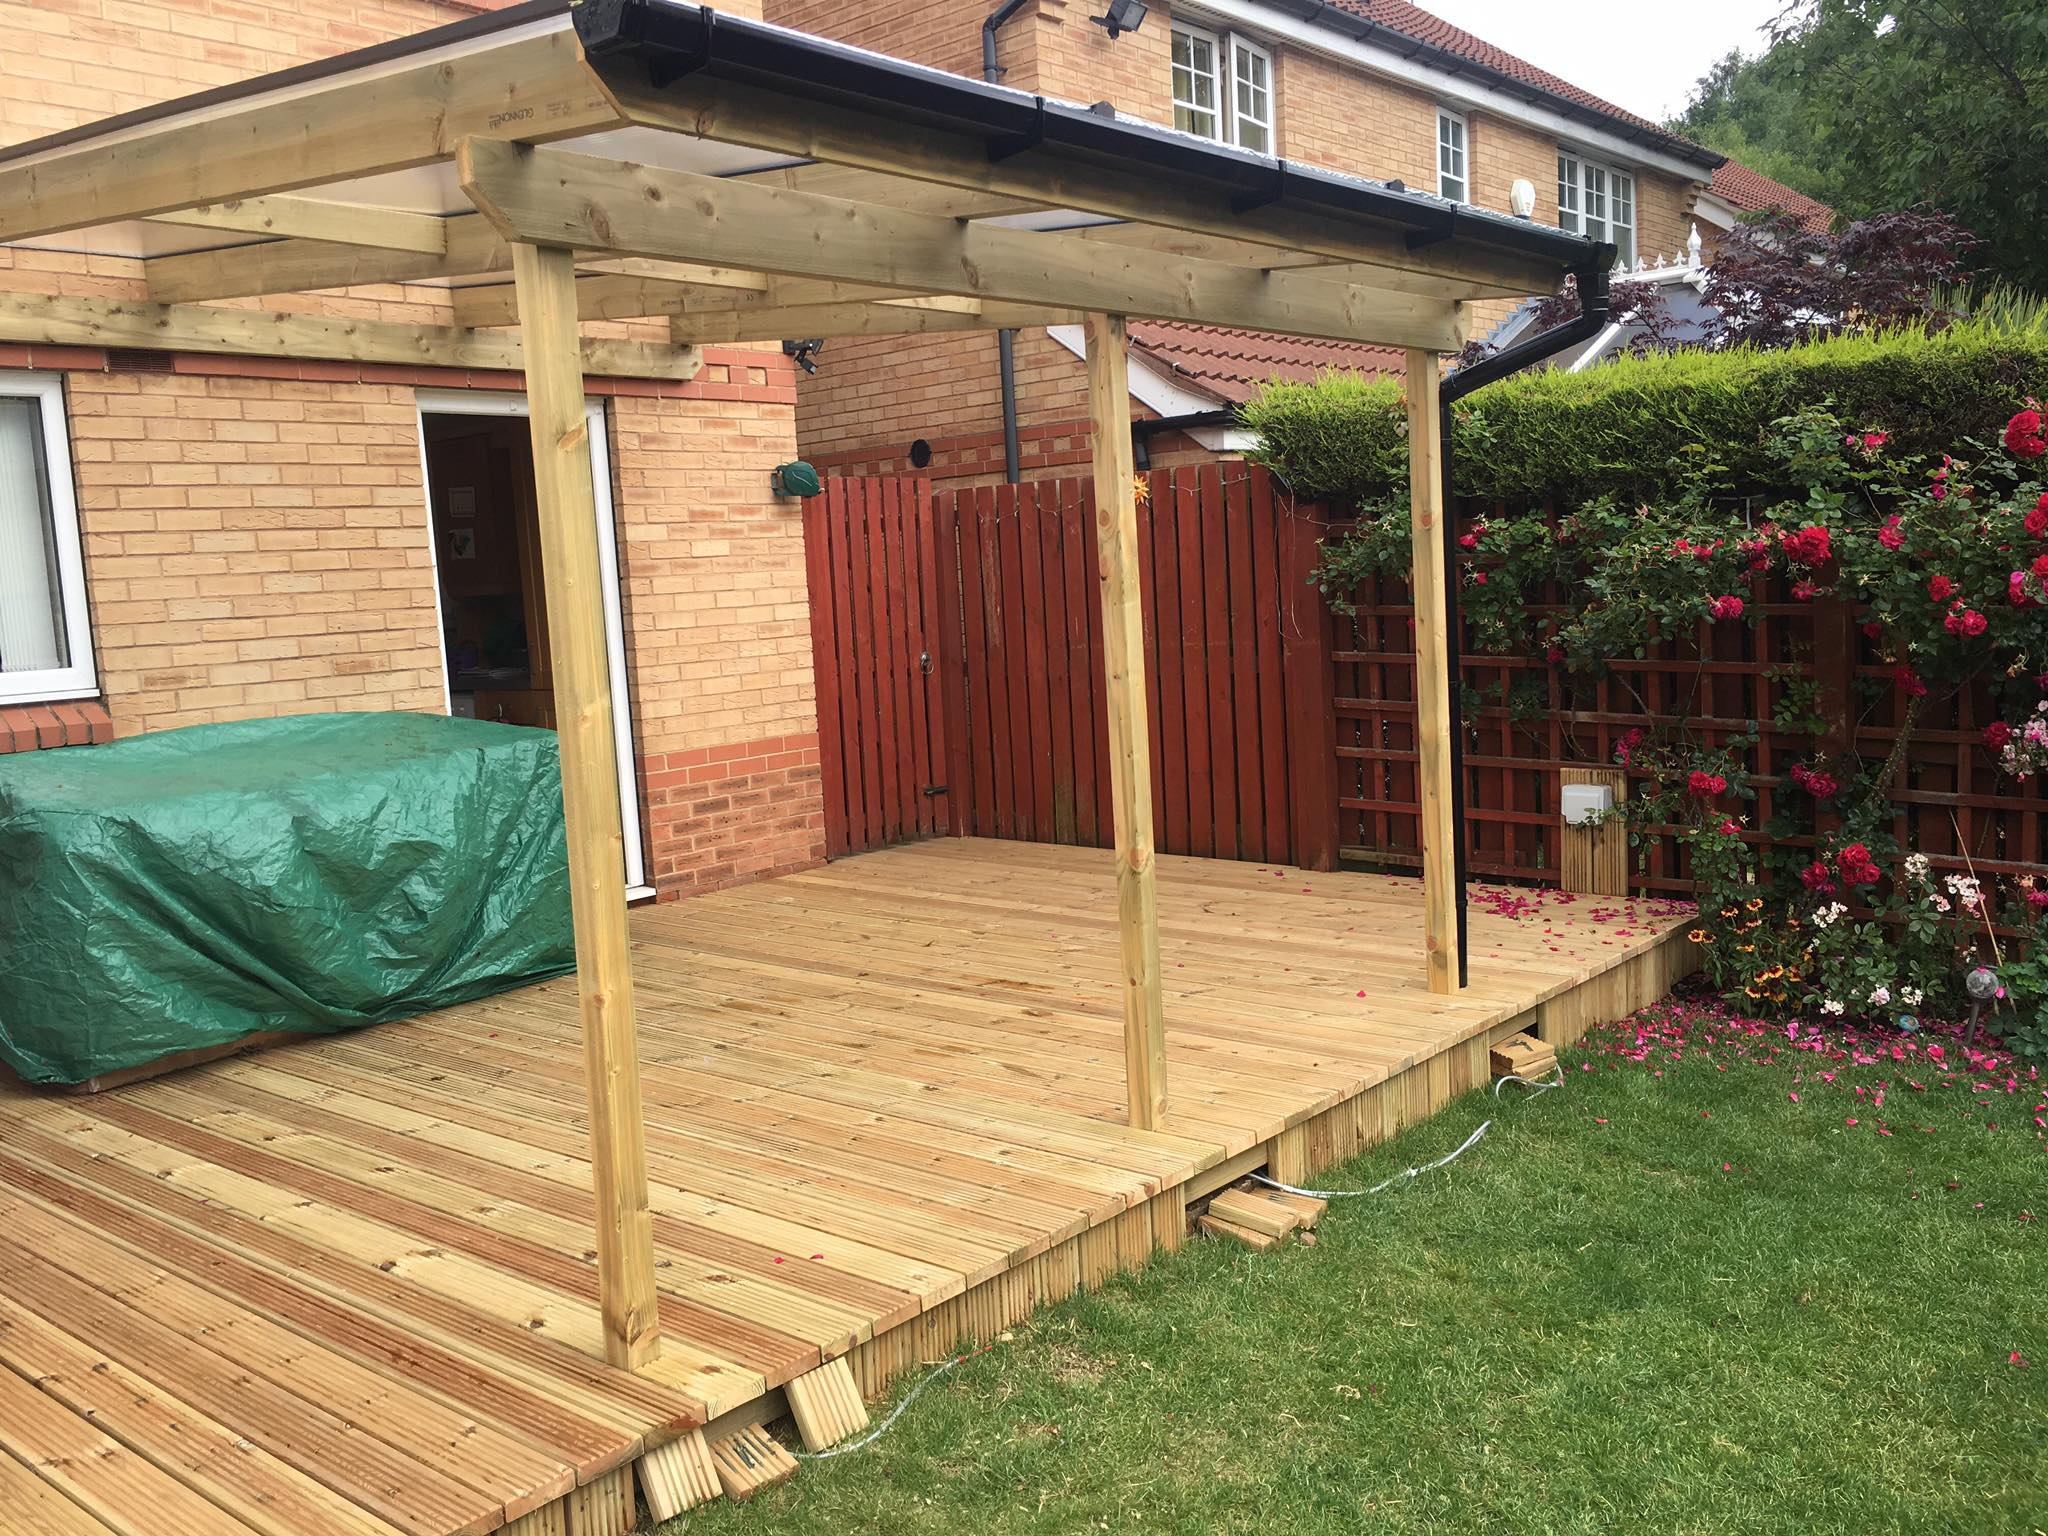 garden decking for more information or to request a consultation, please contact us. CKDDAKB